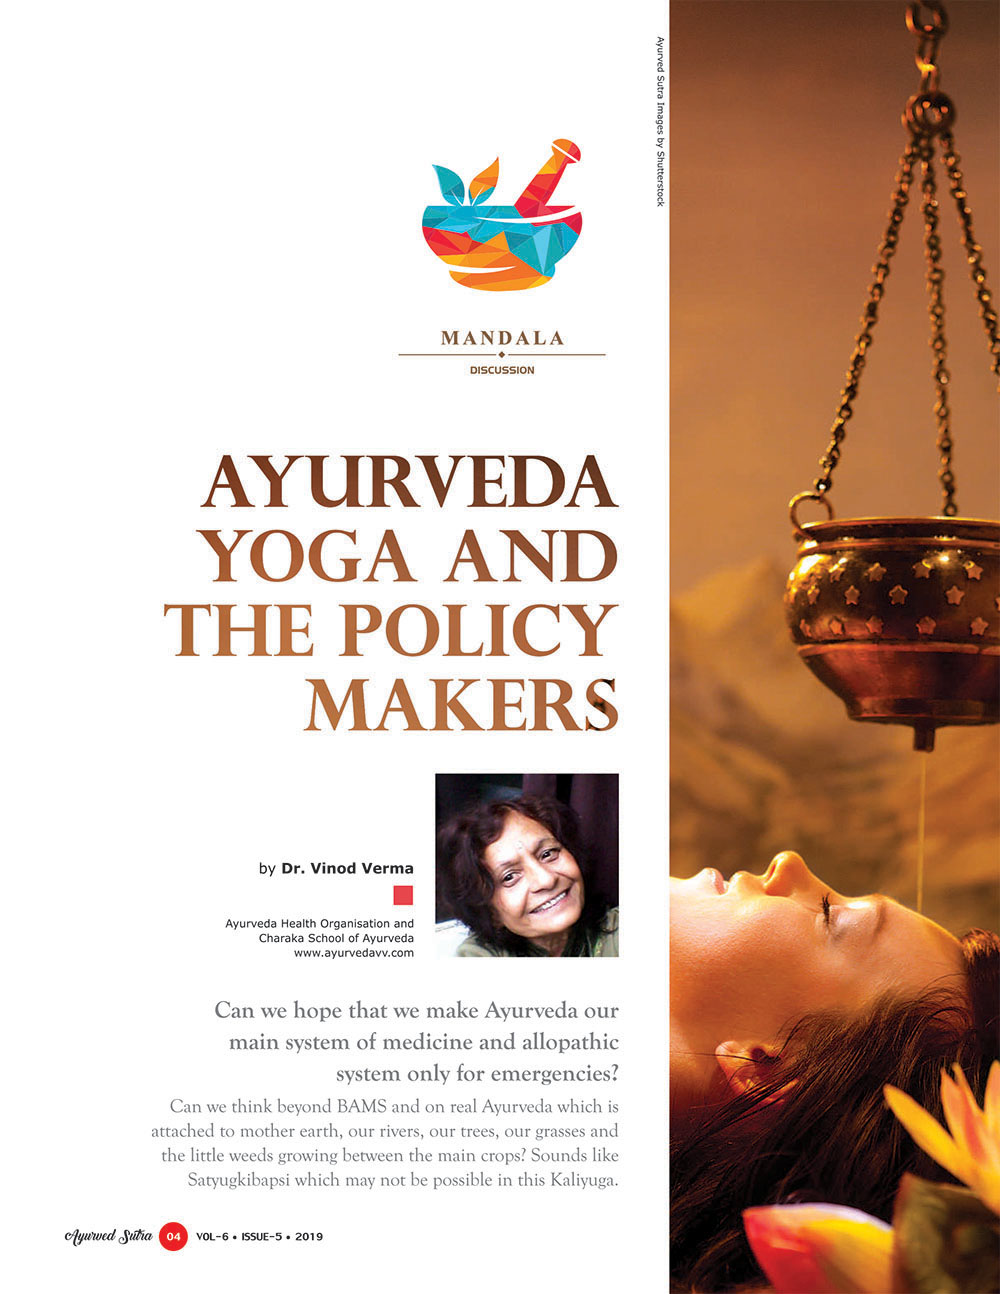 Ayurvedsutra Vol 06 issue 05 6 - Ayurveda Yoga and the Policy makers